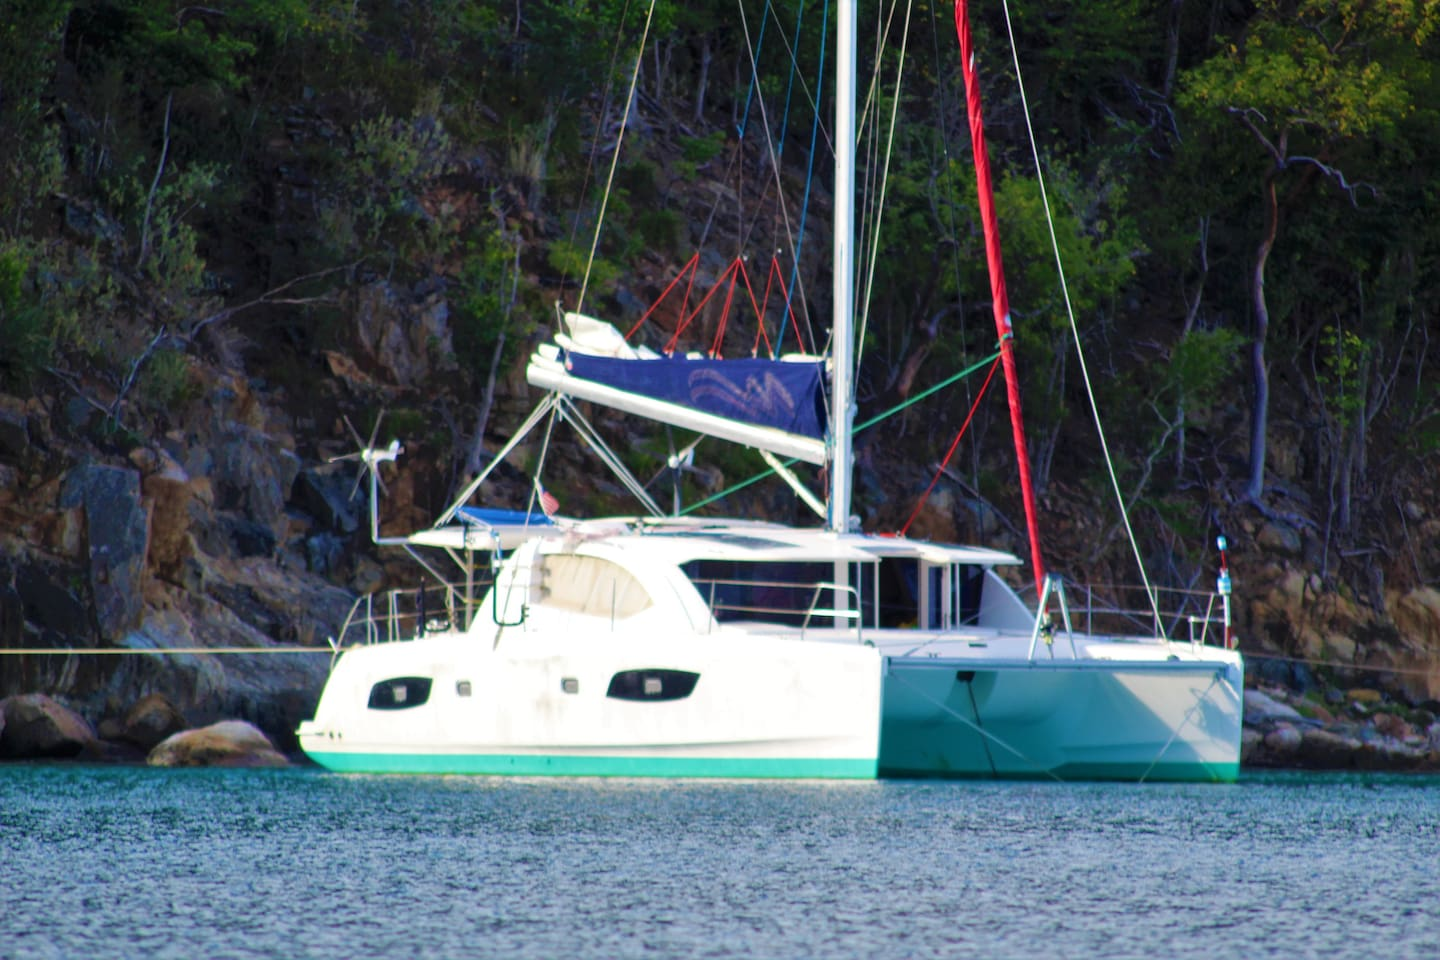 44ft  robertson and caine, catamaran. anchoring at yet another great locaiton.